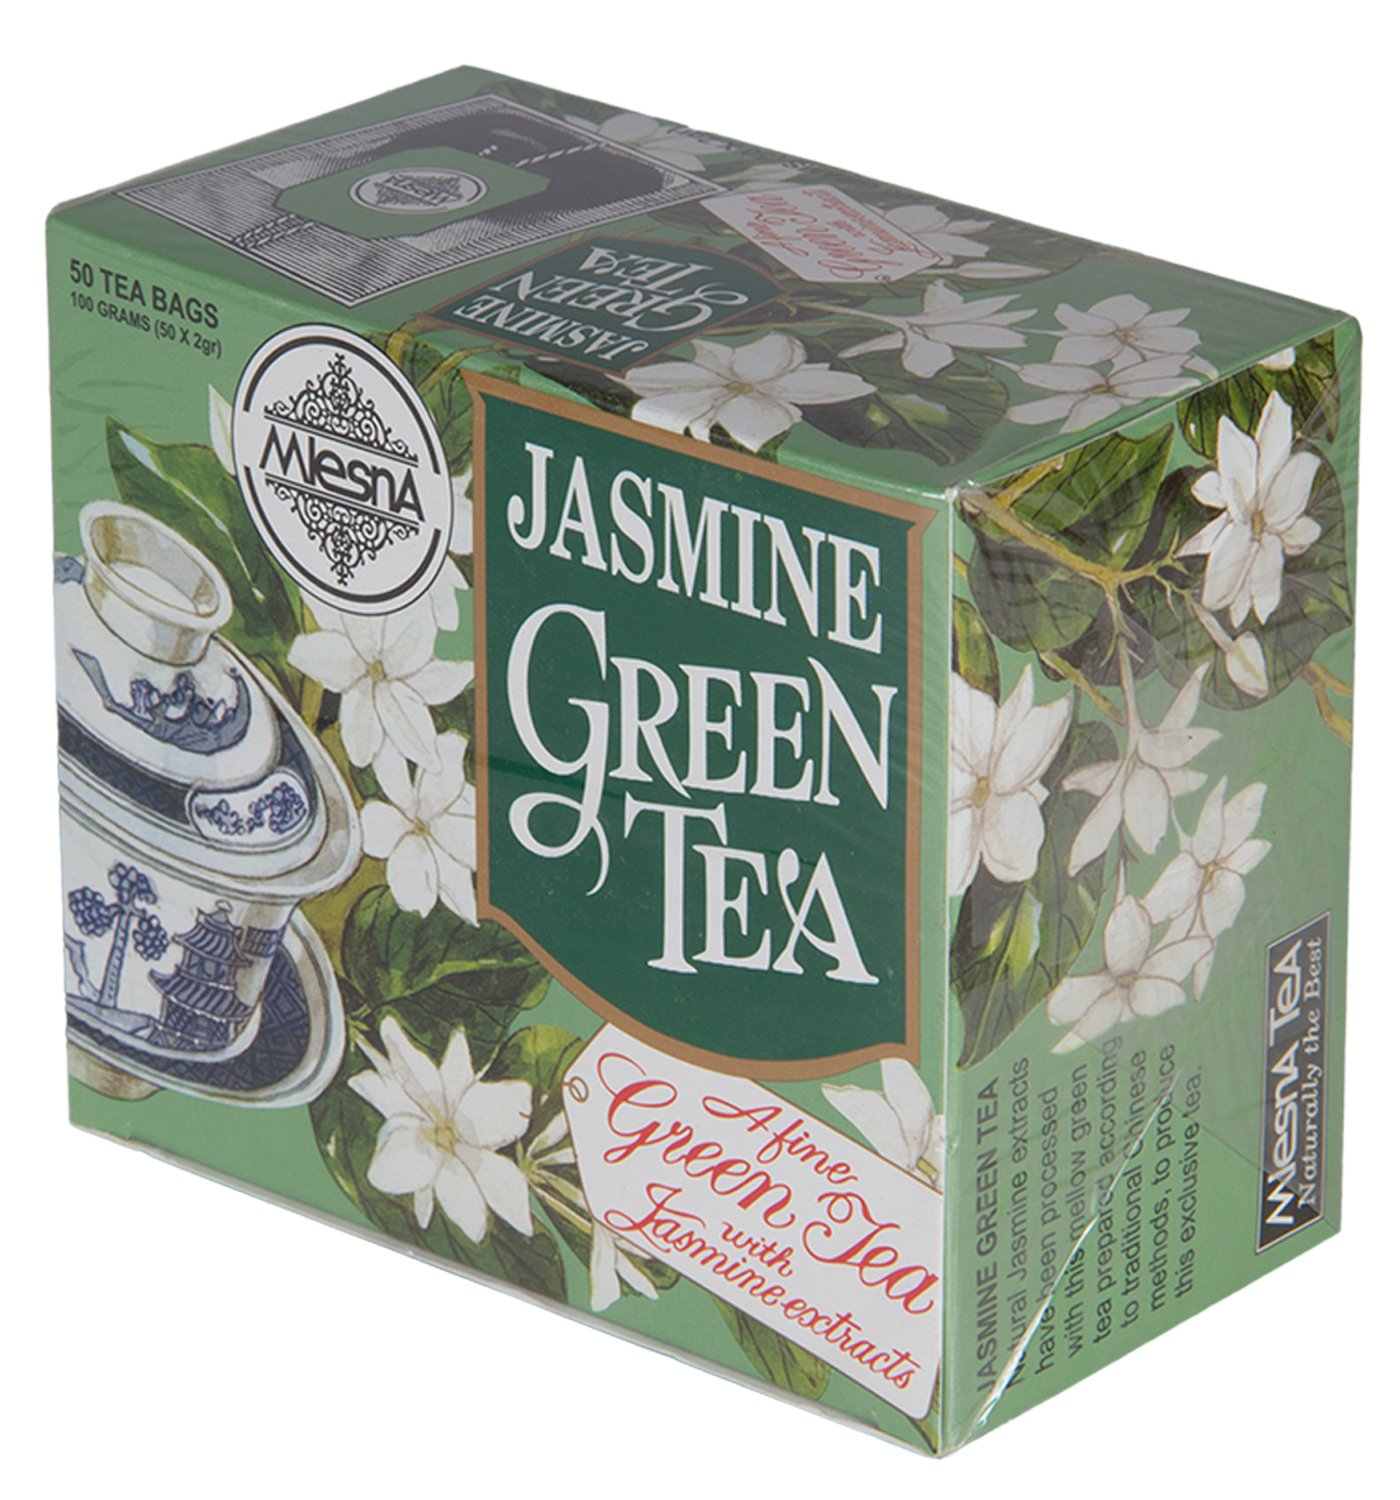 Mlesna flavoured green tea jasmine 100g amazon grocery mlesna flavoured green tea jasmine 100g amazon grocery gourmet foods izmirmasajfo Images